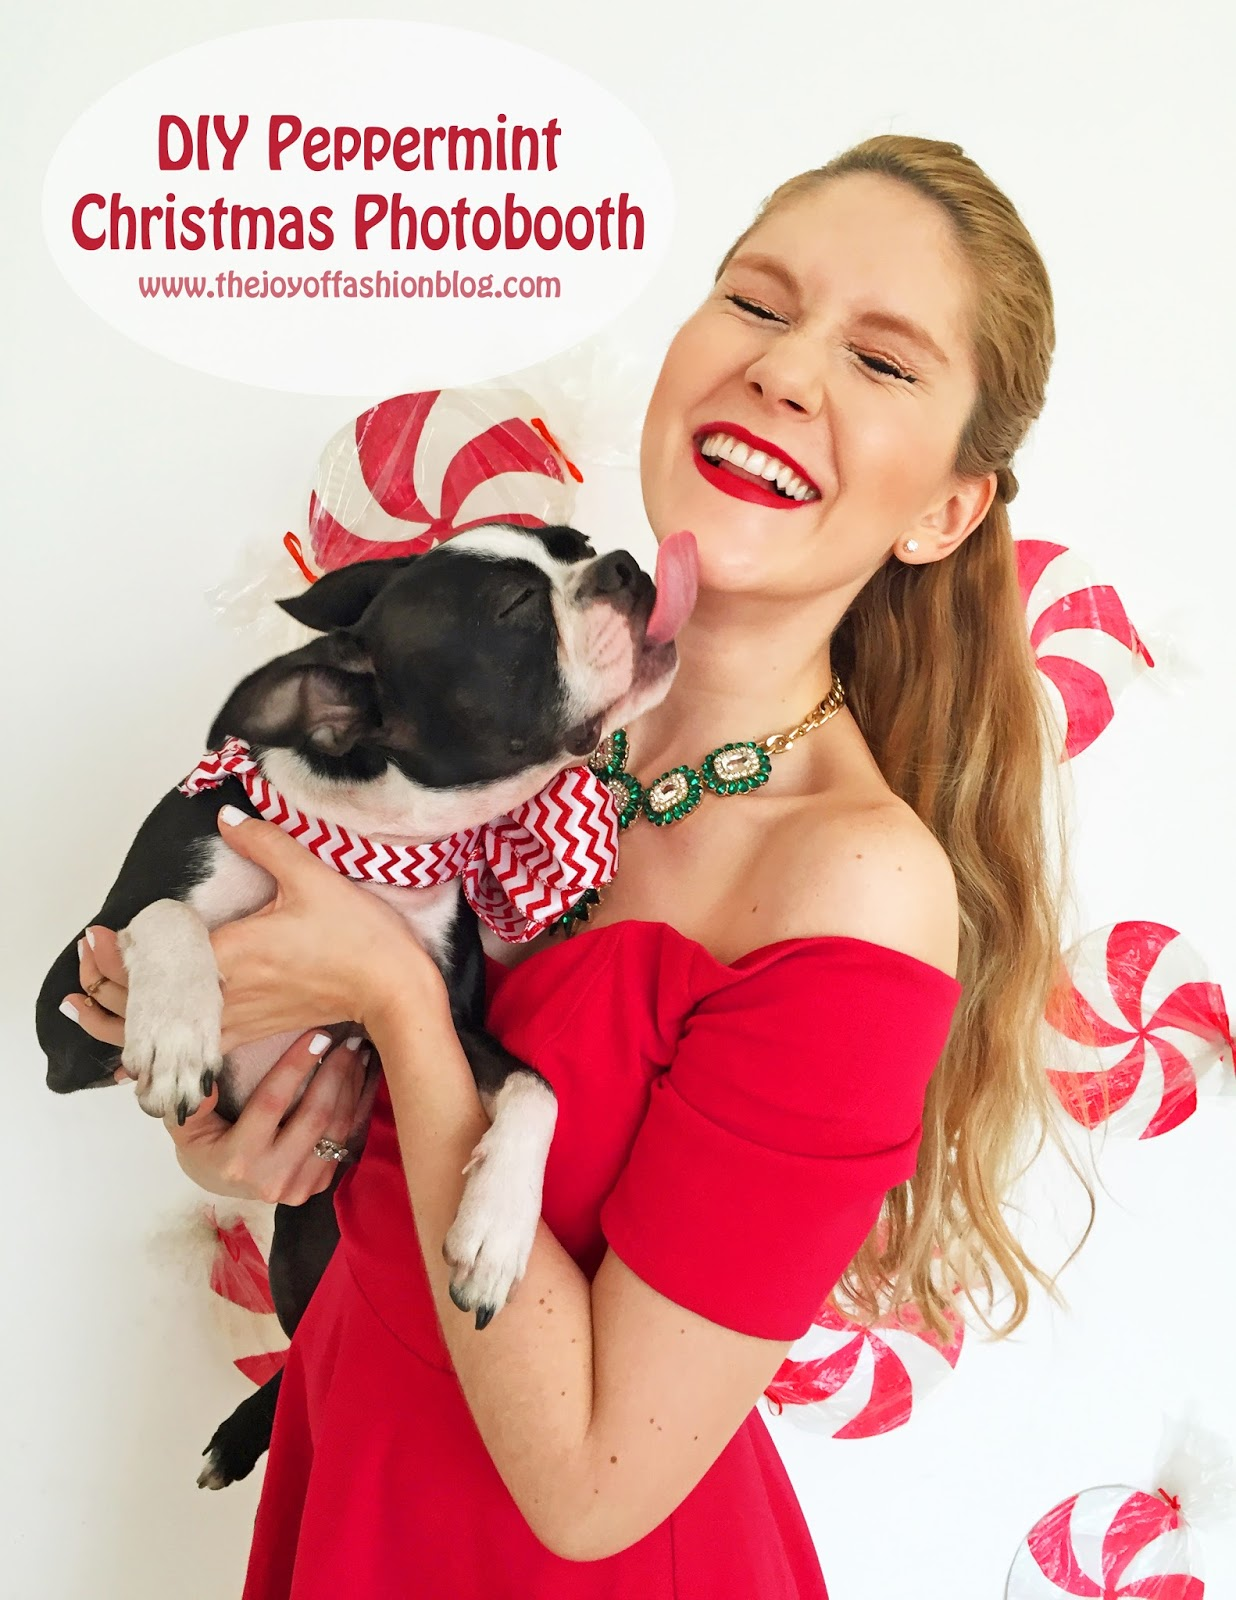 Super cute and easy to make Peppermint photobooth for Christmas! Click through for full tutorial